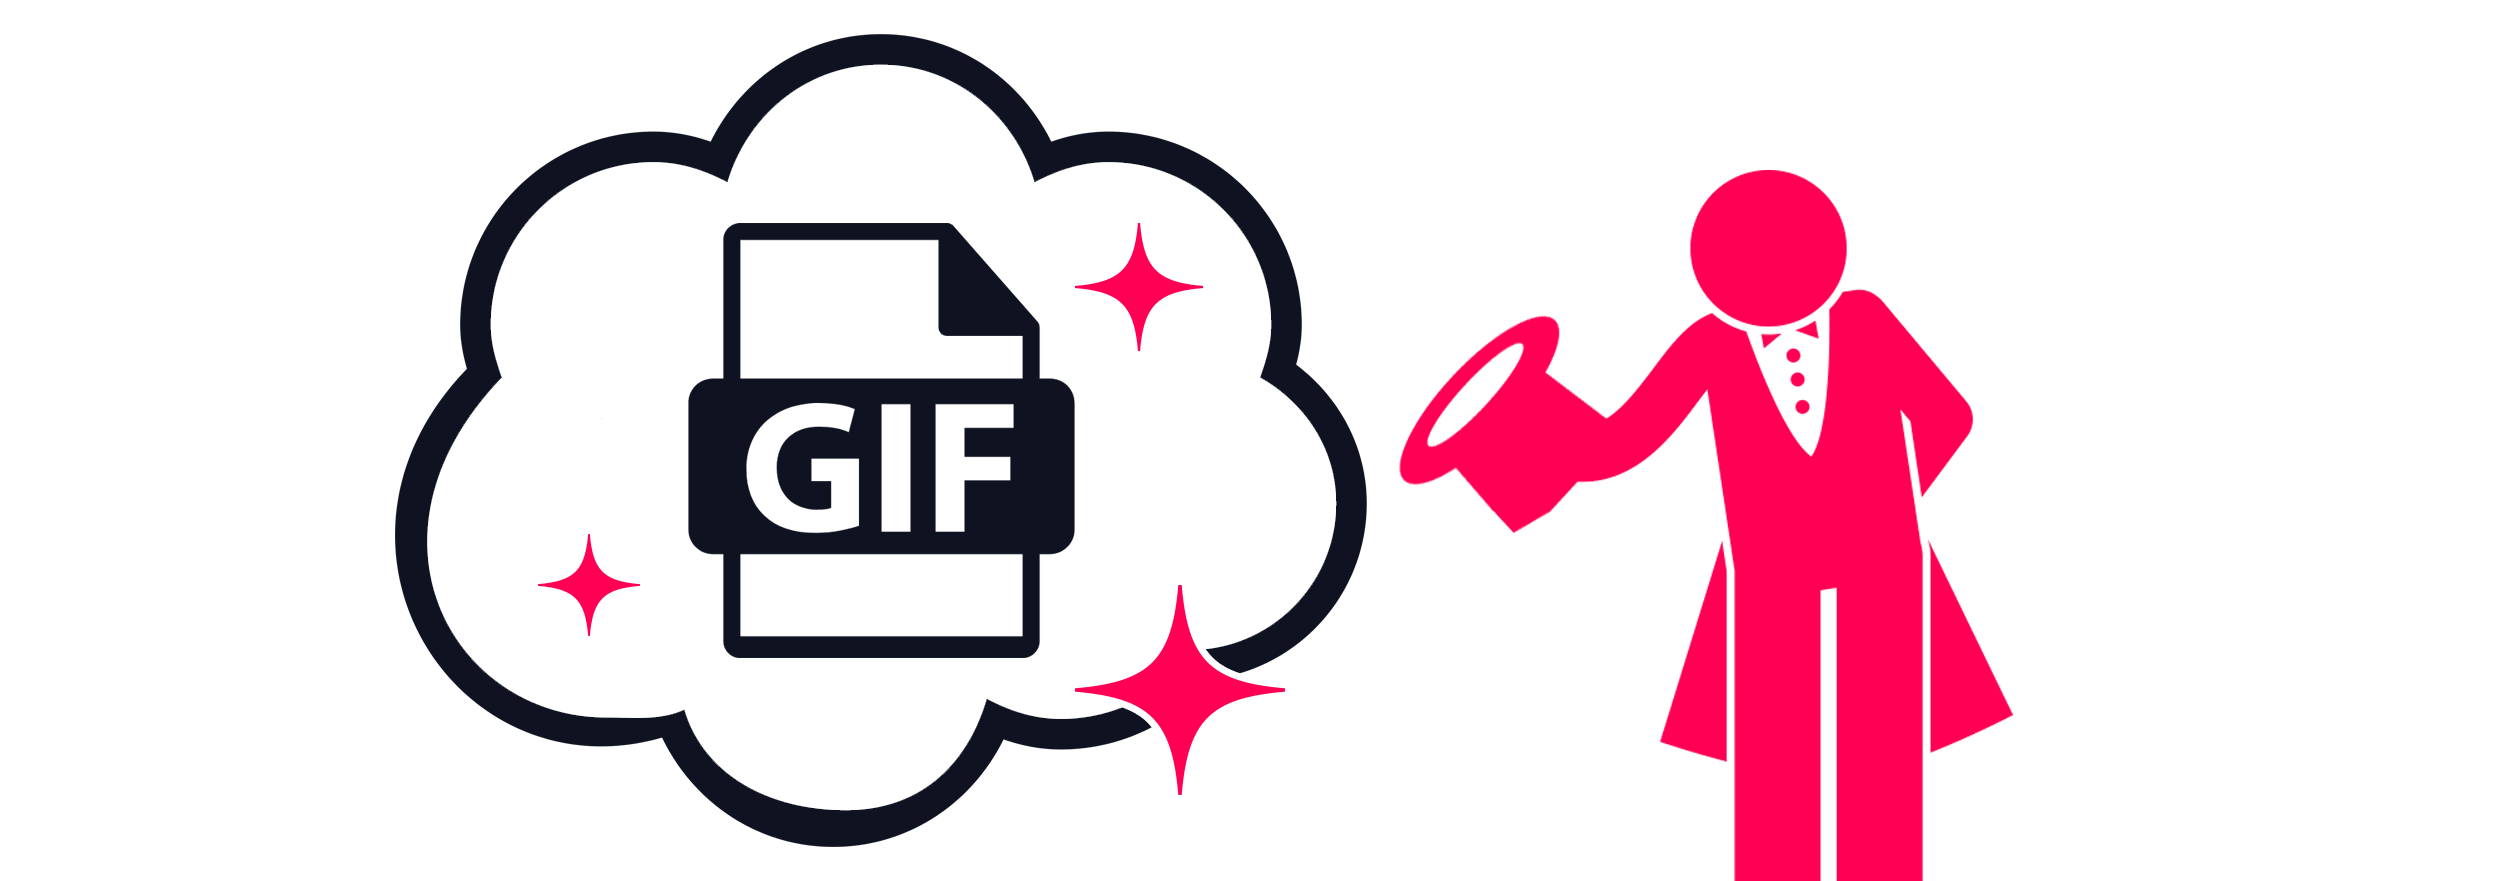 Imgur search cliparts only clip royalty free stock 5 Ways To Make An Animated GIF (Without Photoshop!) clip royalty free stock